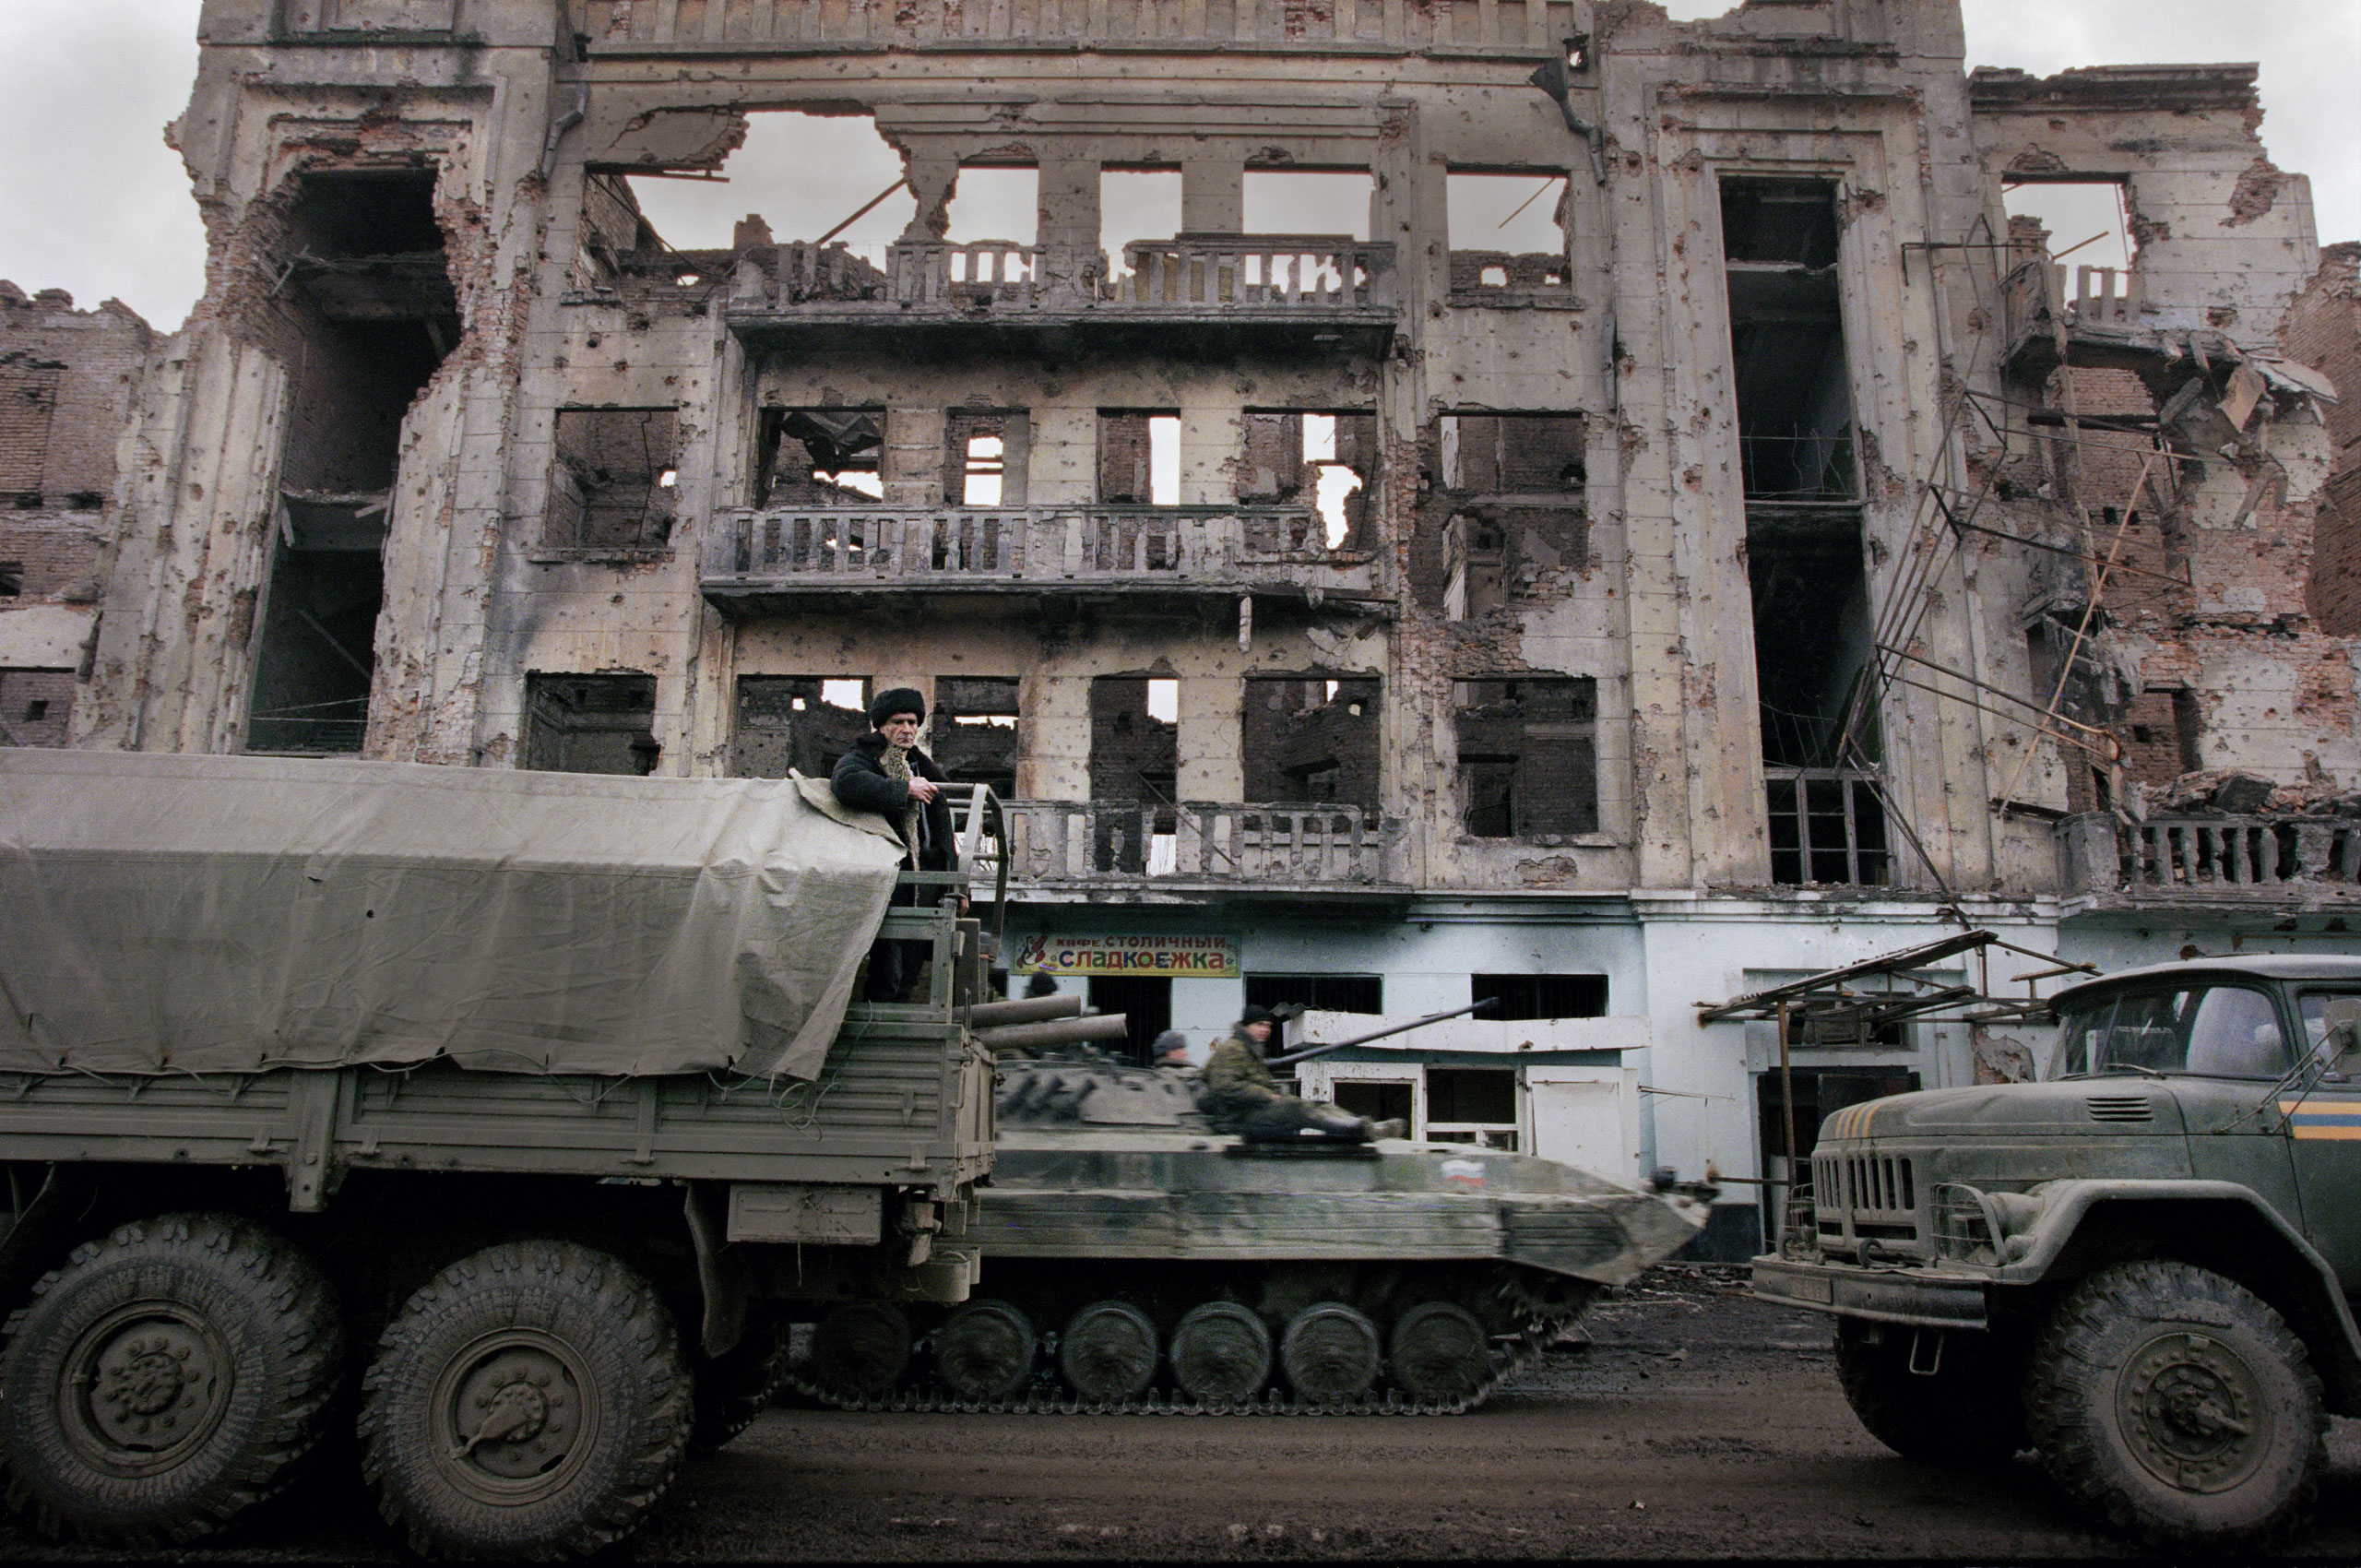 In the first year of Vladimir Putin's presidency, in 2000, massive Russian air strikes destroyed Chechnya's capital of Grozny, February, 2000.